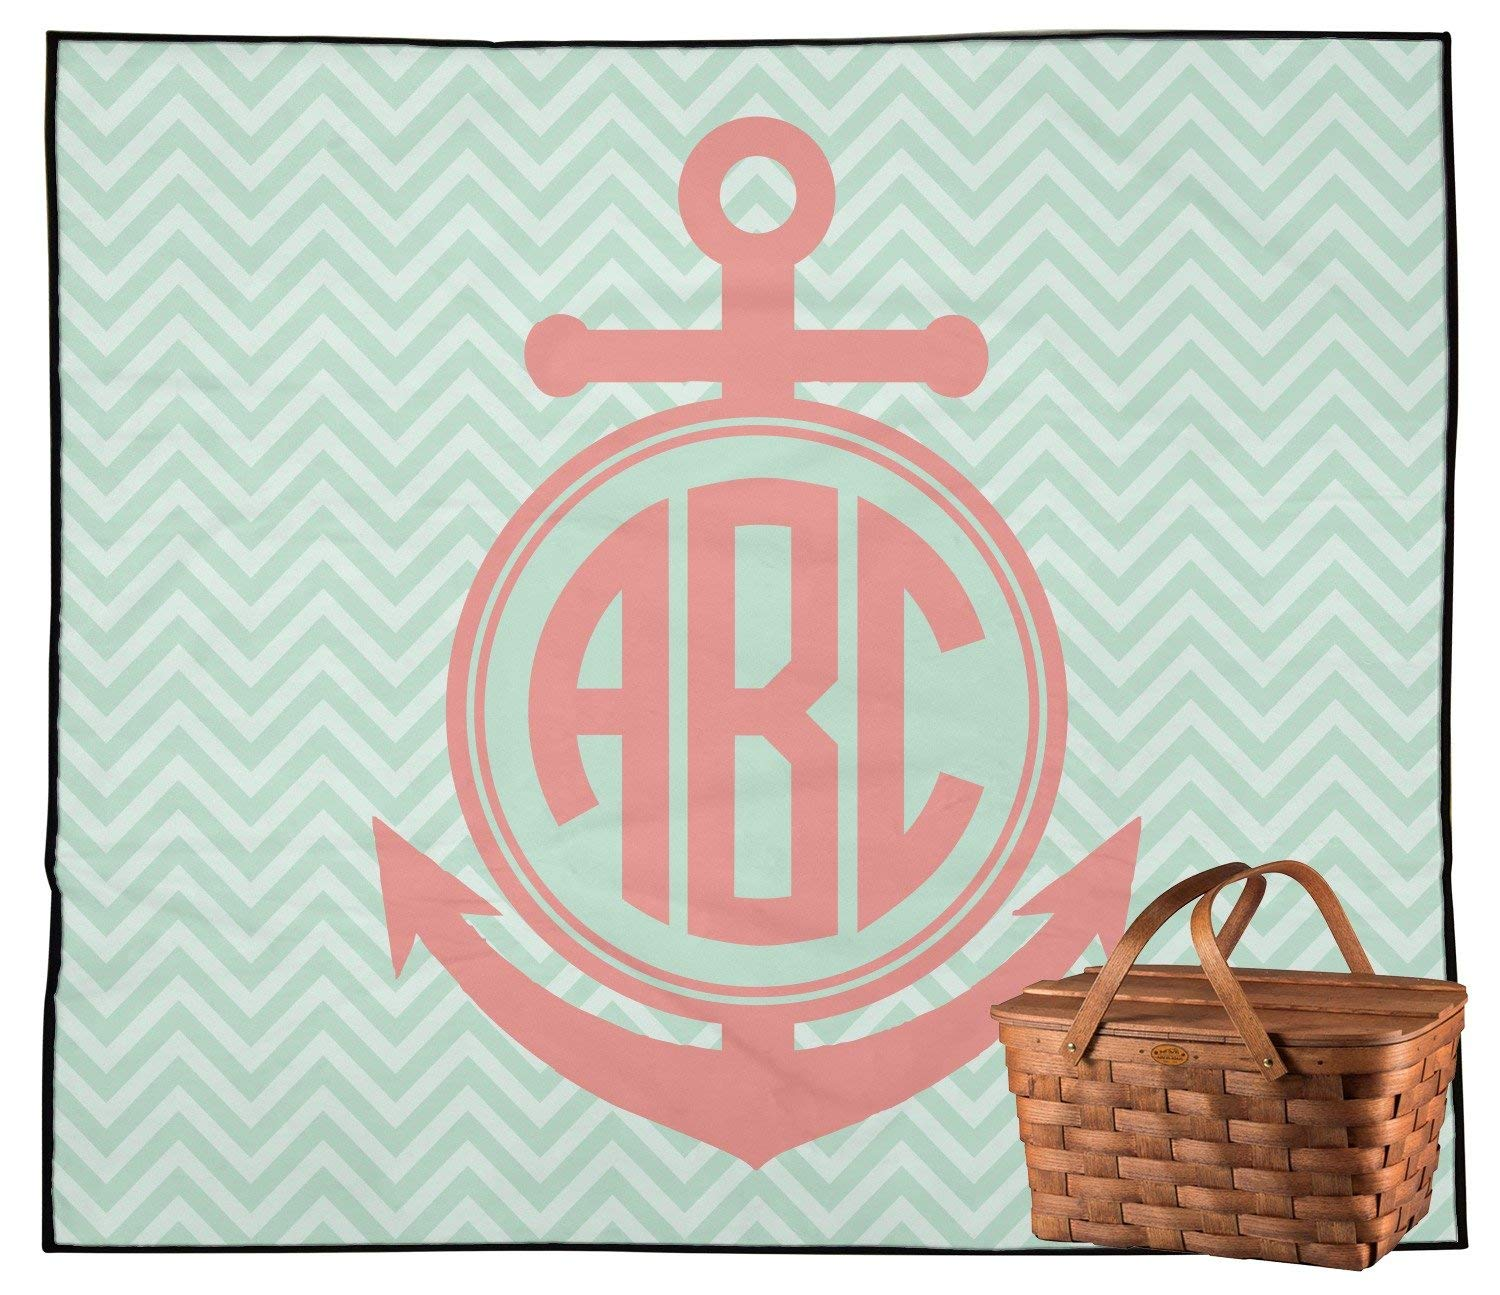 ed8f3f810f6a Get Quotations · RNK Shops Chevron & Anchor Outdoor Picnic Blanket  (Personalized)